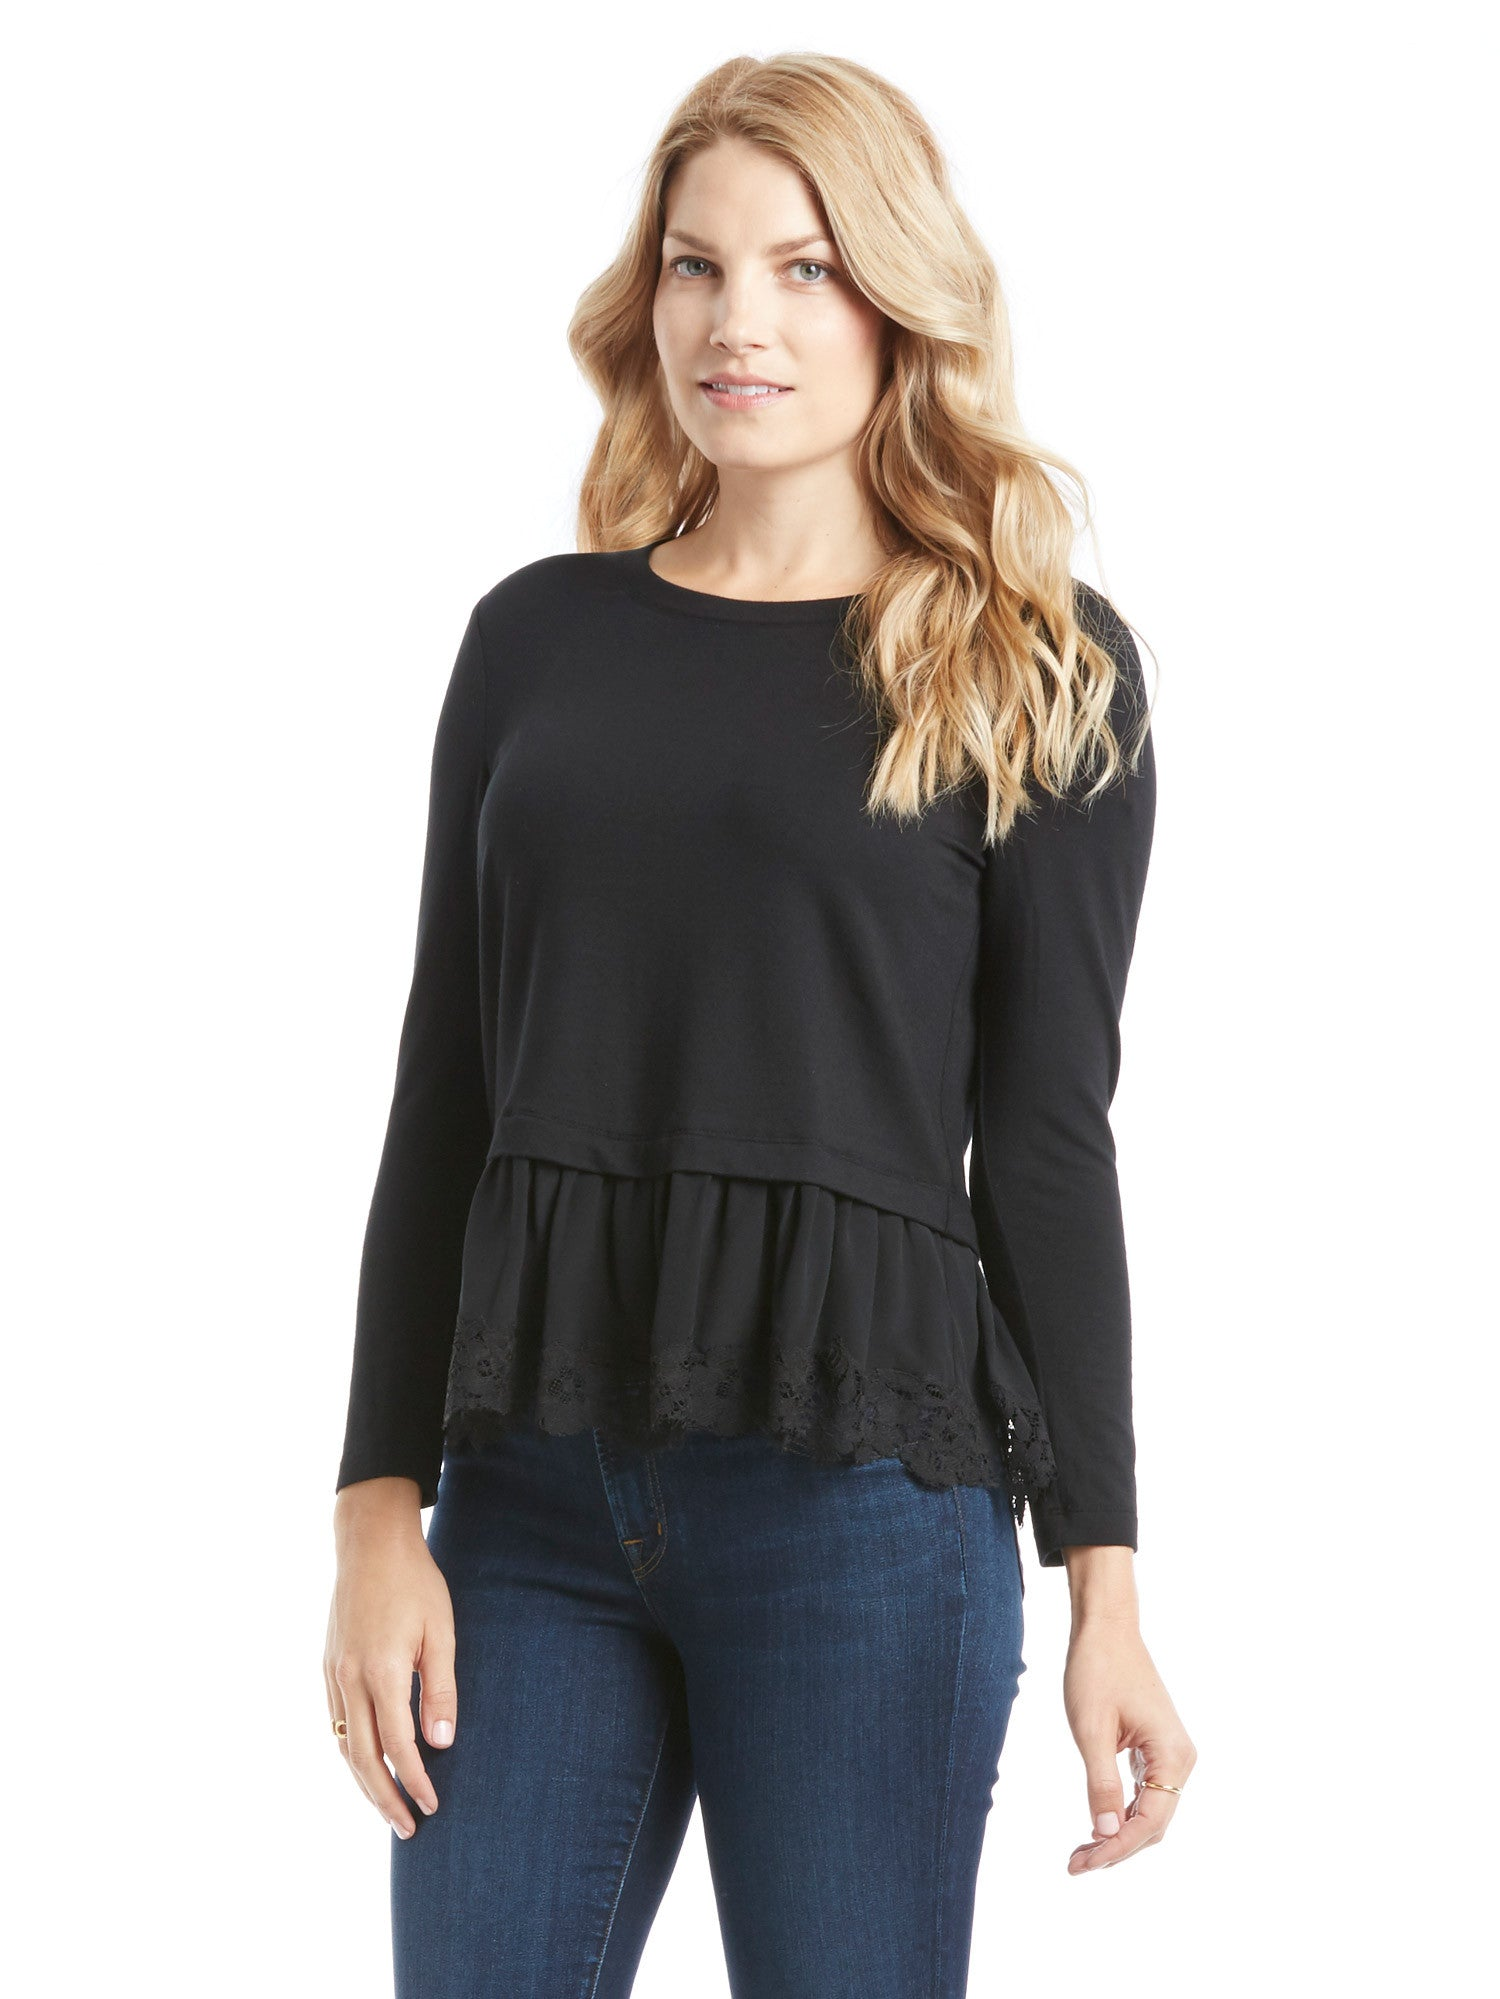 TILDEN | Rebecca Taylor Long Sleeve Lace Hem Top